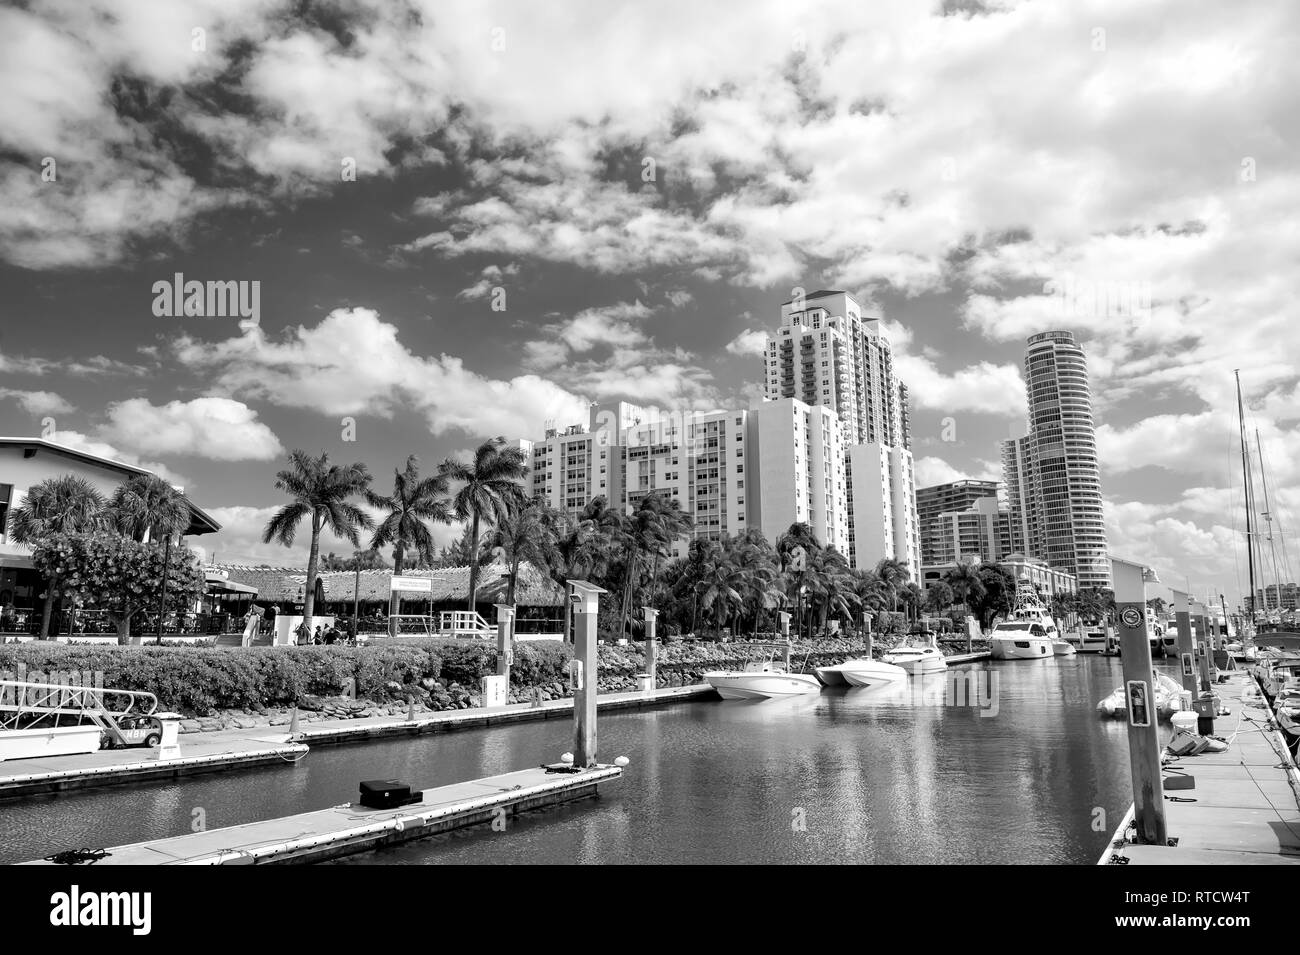 Miami, USA-February 19, 2017 :View of luxurious boats and yacht docked in a Miami South Beach Marina Stock Photo